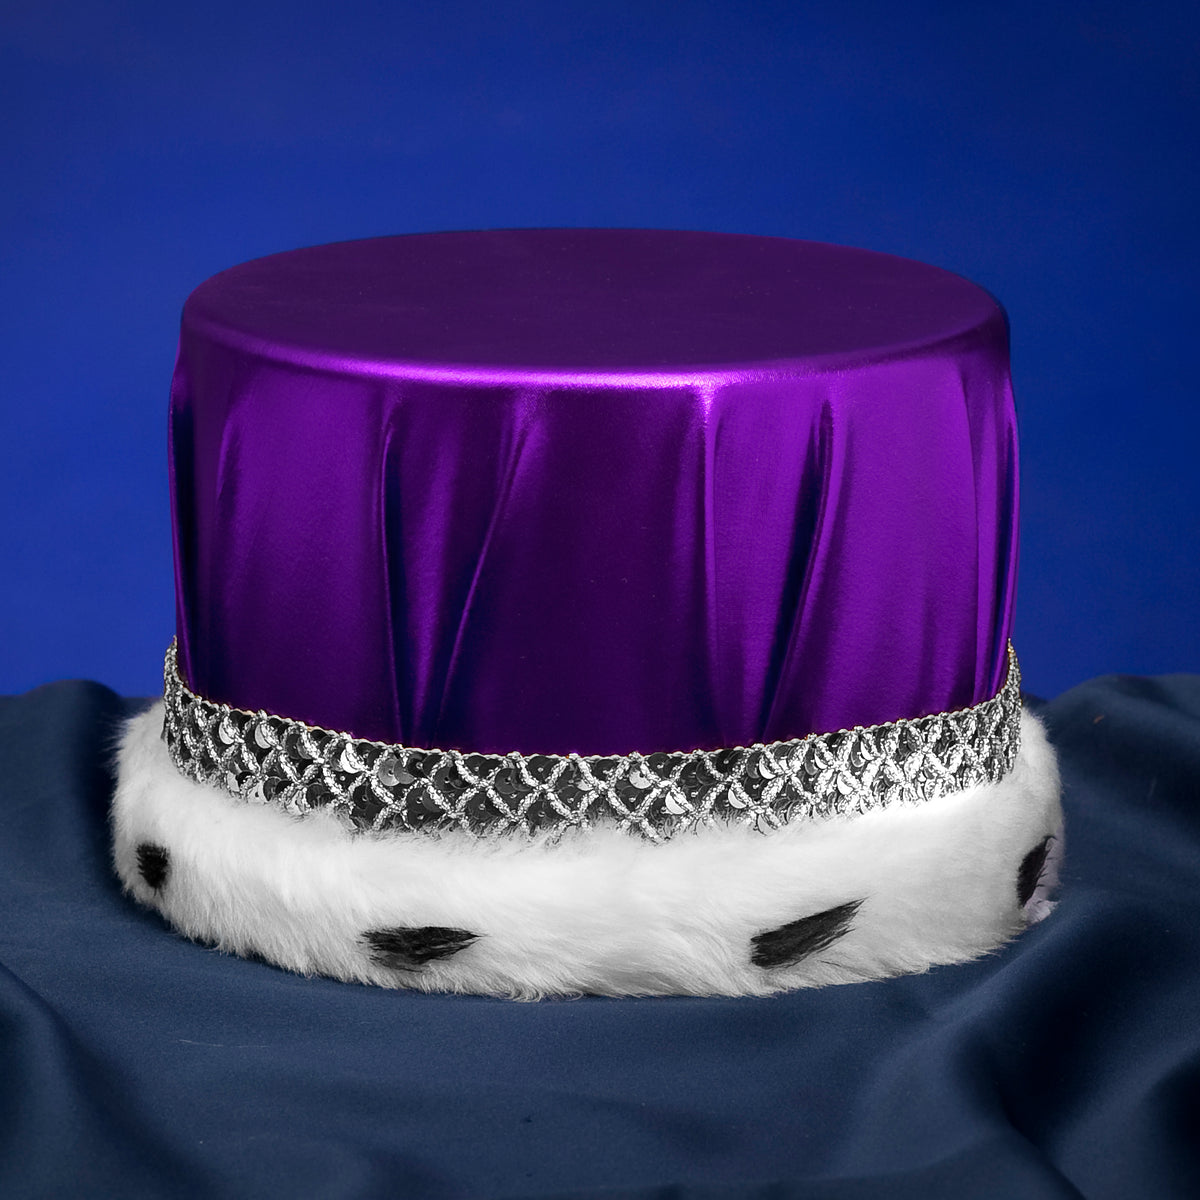 Metallic Purple with Silver Trim Crowns